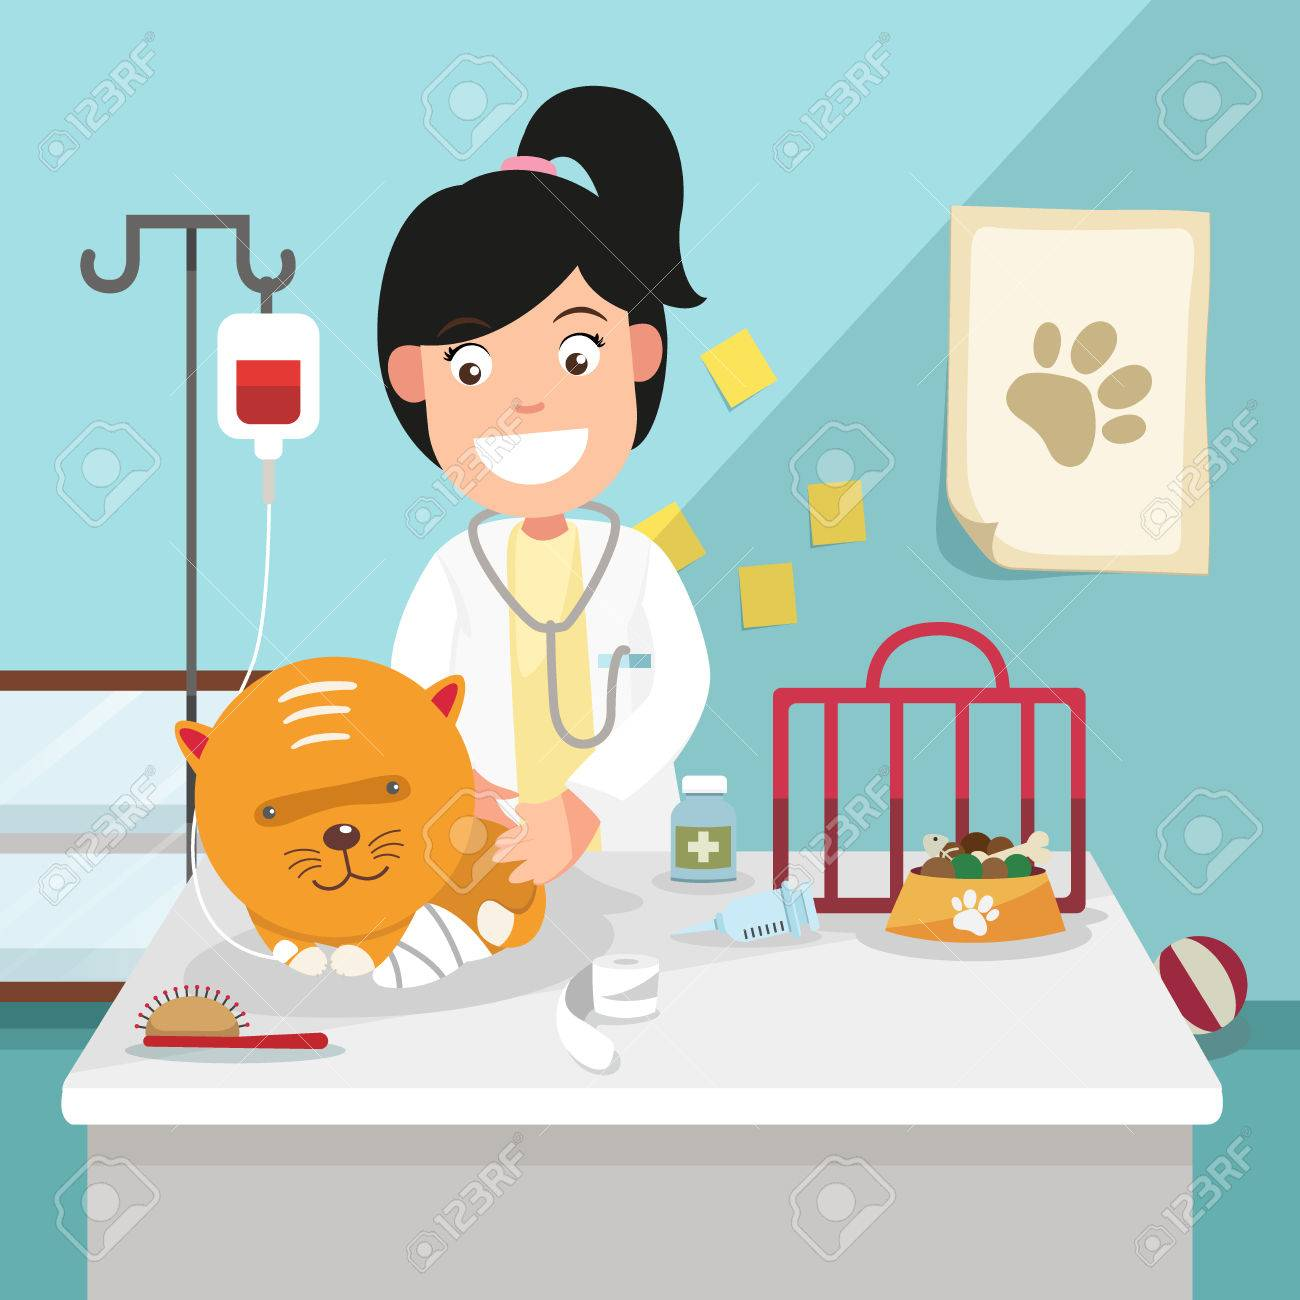 The idea of female veterinarian curing illustration, vector.